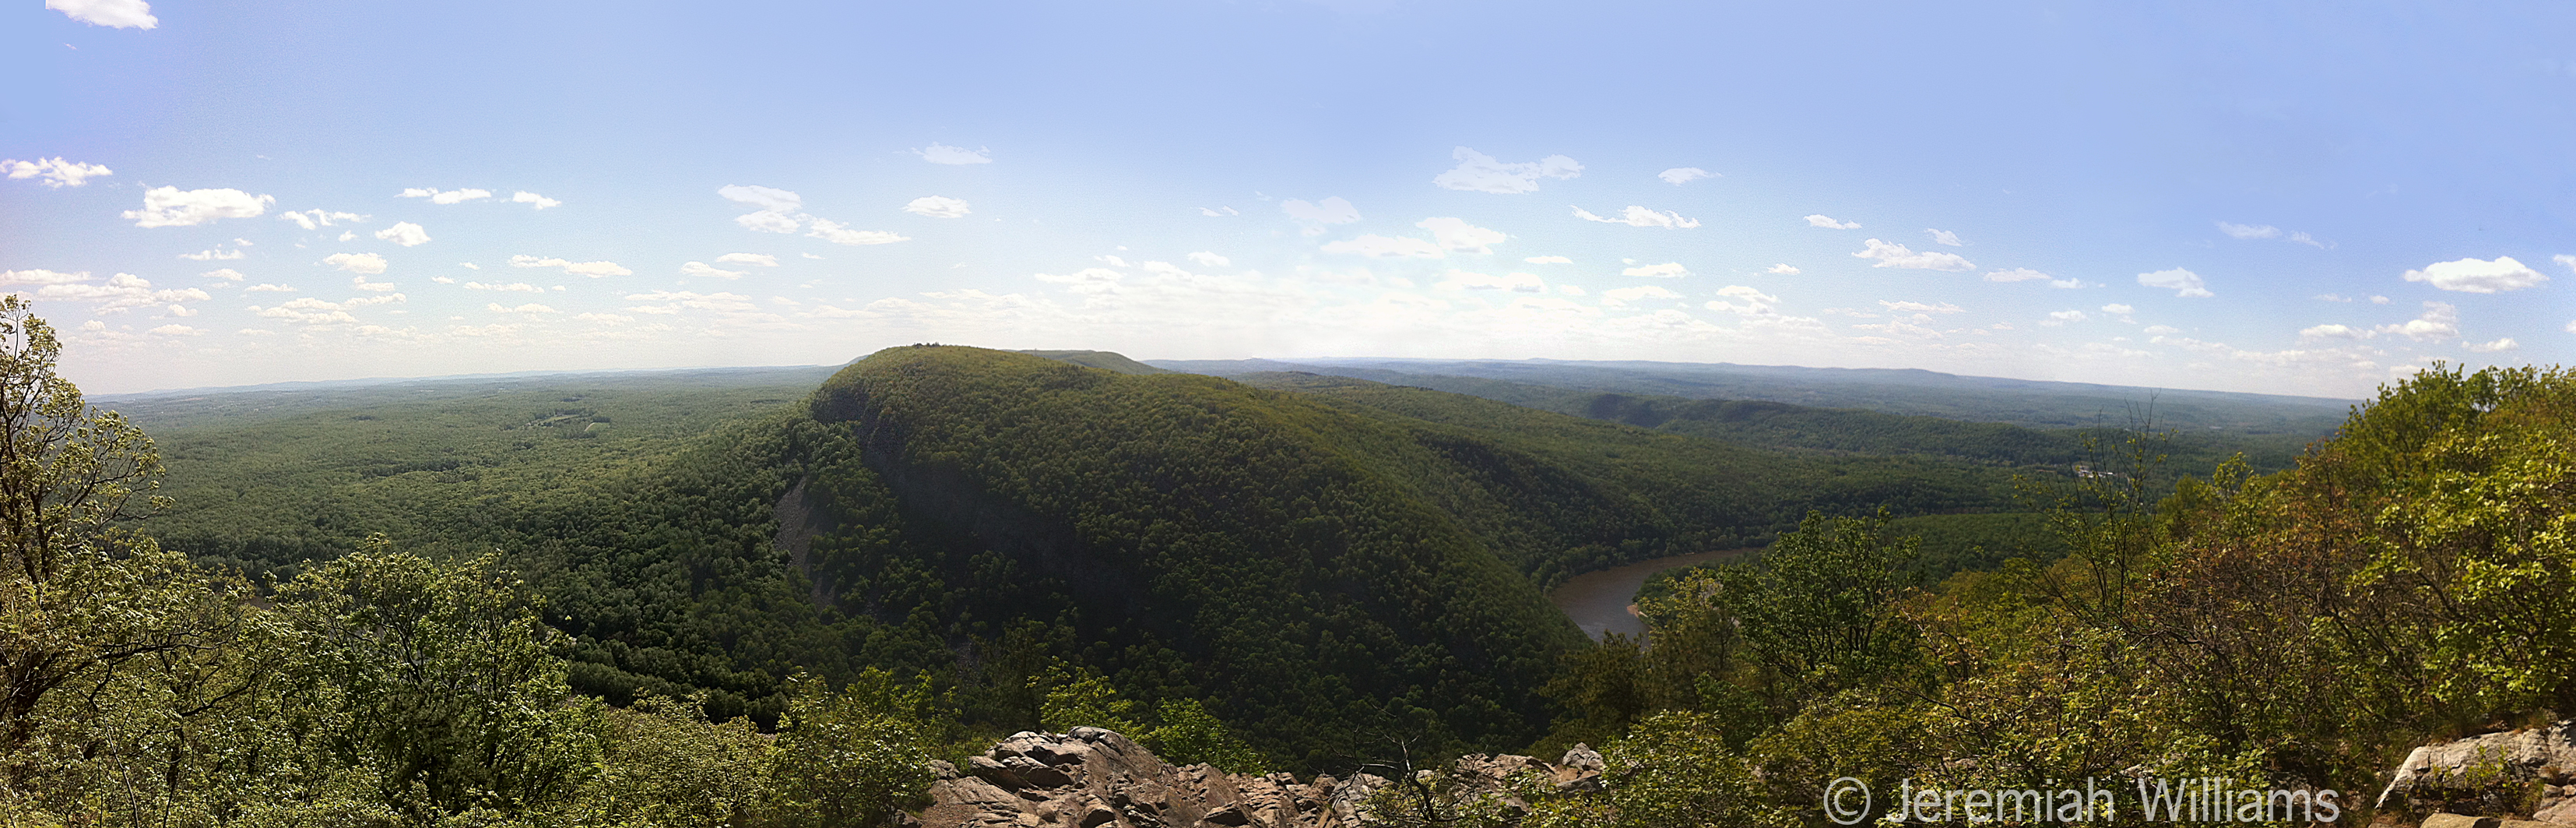 Mt Tammany Summit